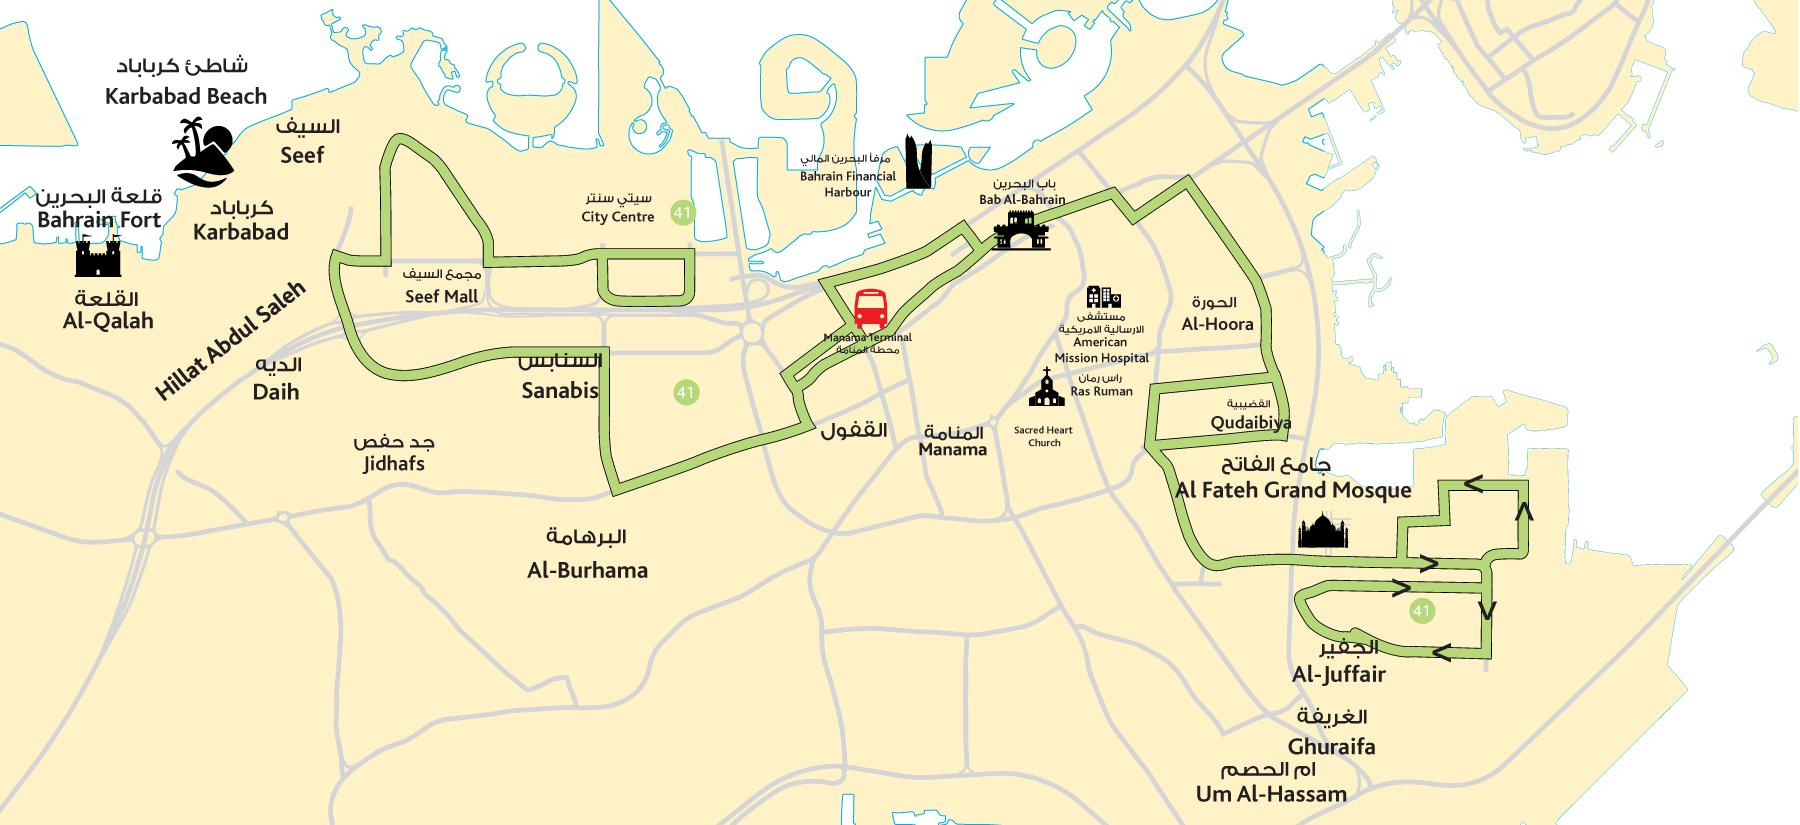 bahrain city center map City Center Bahrain Map Map Of City Center Bahrain Western Asia bahrain city center map